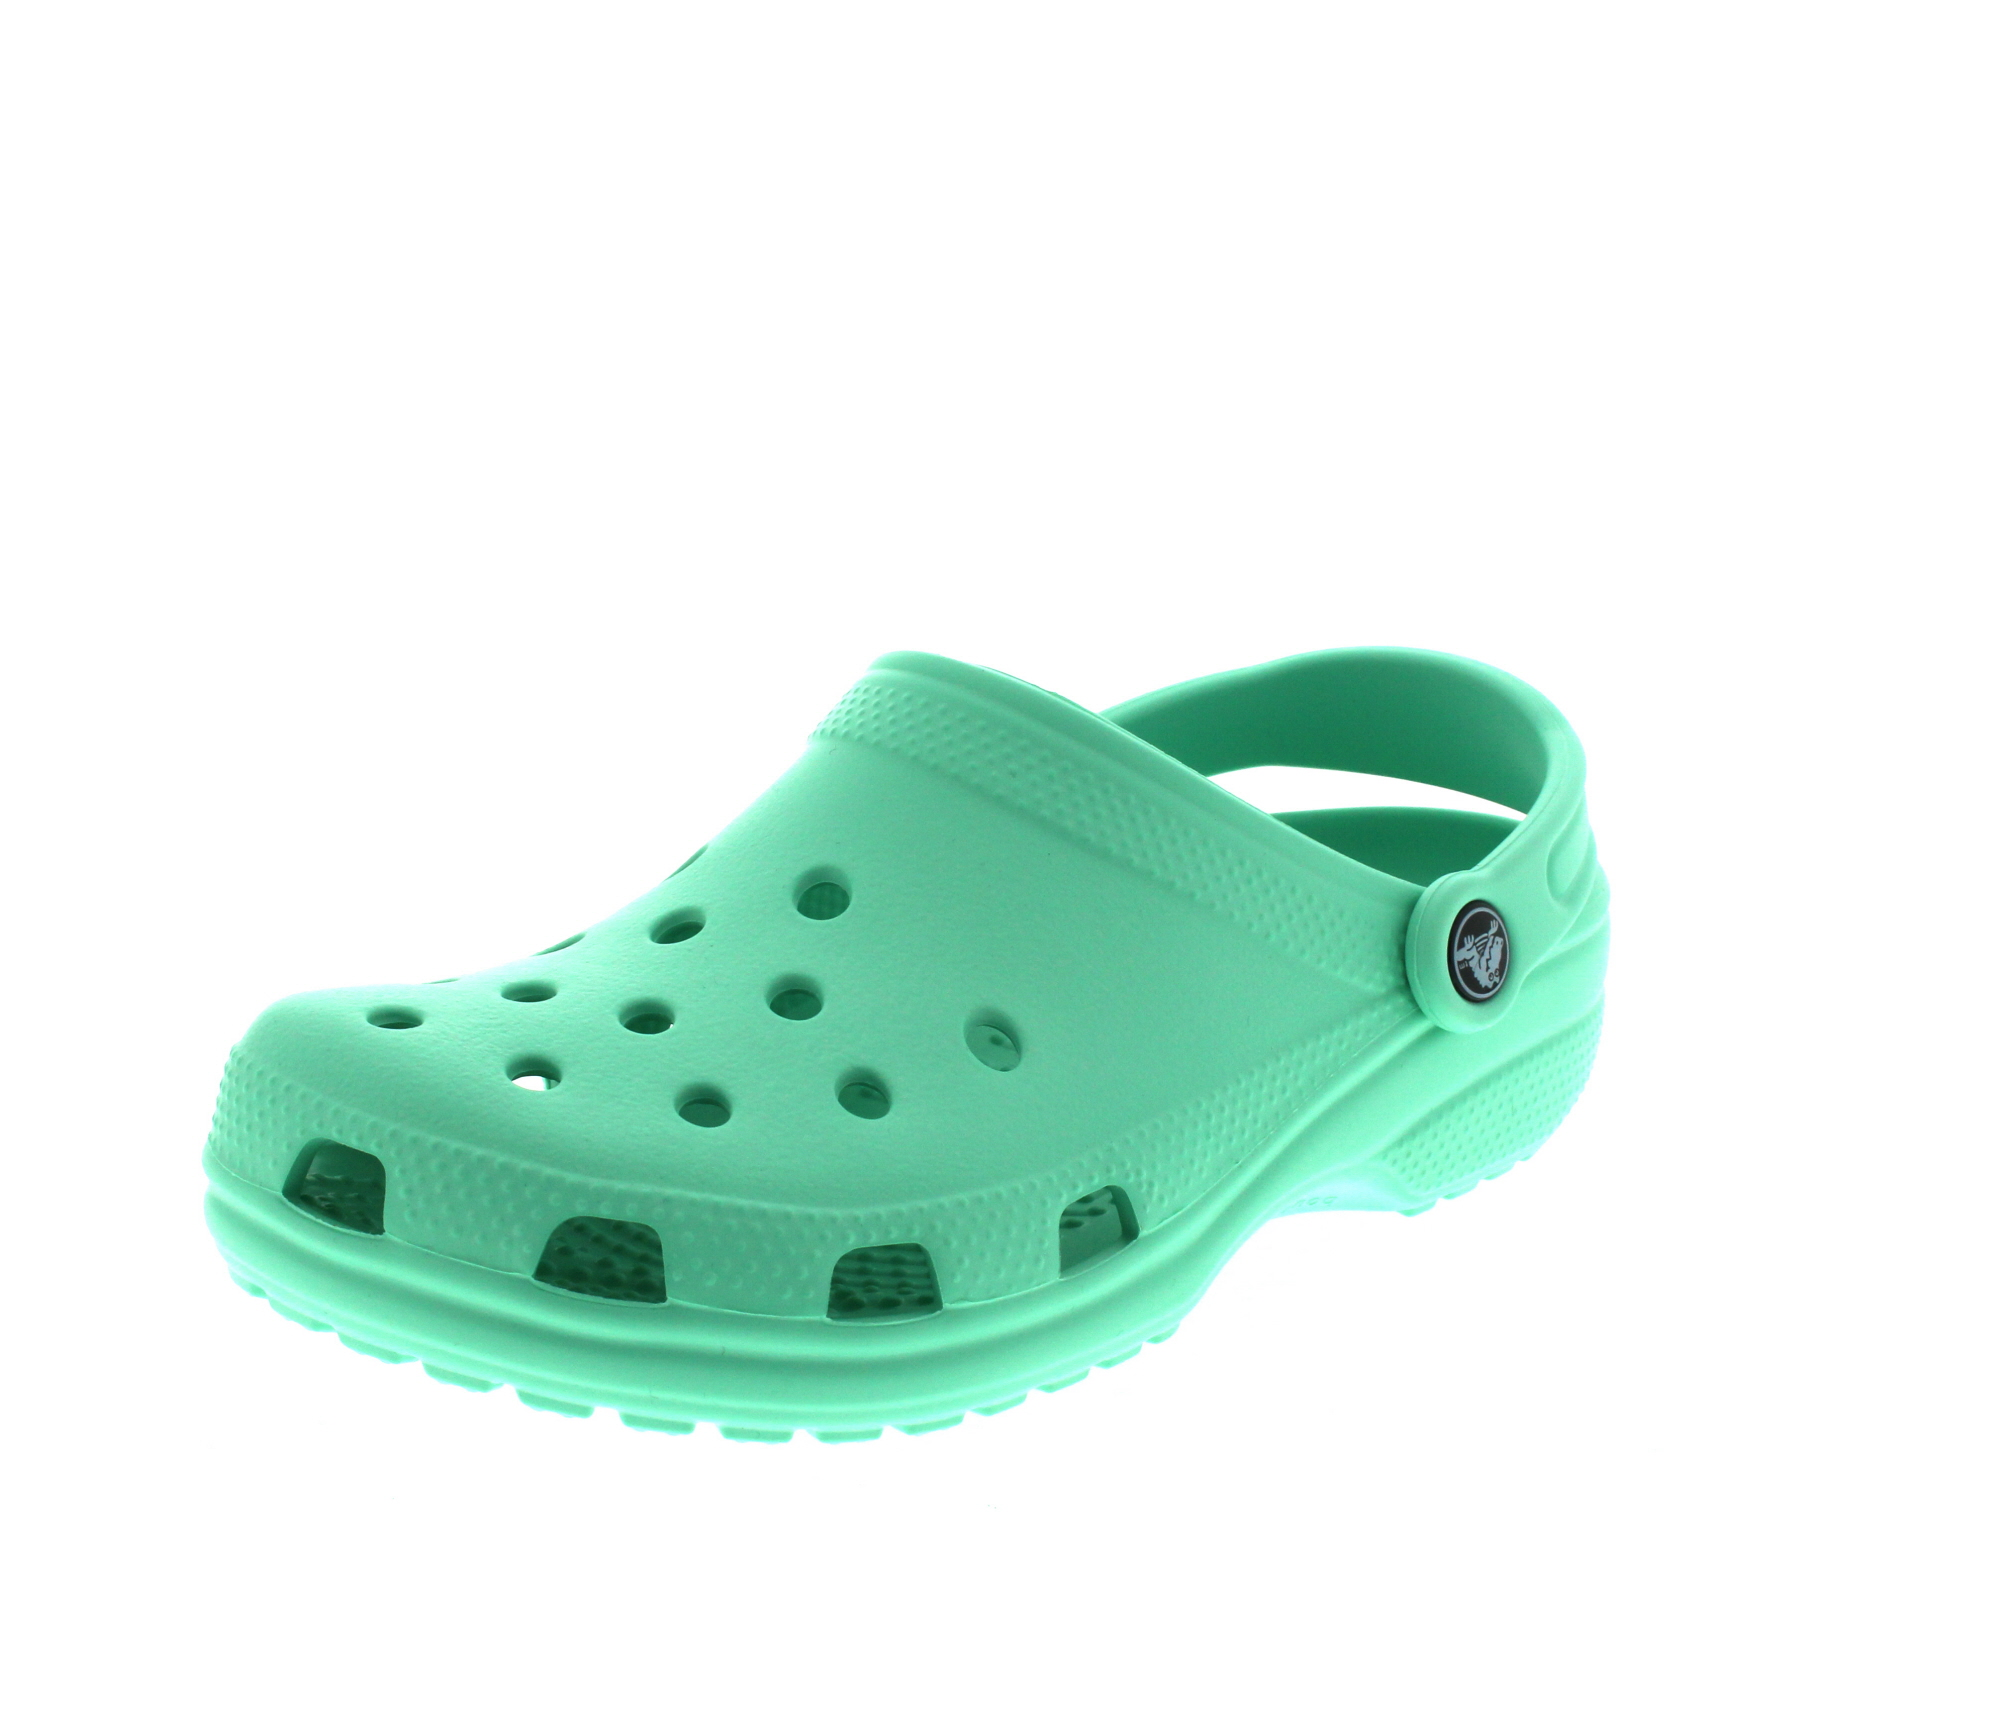 CROCS Kinderschuhe - Clogs CLASSIC KIDS 204536 new mint0-6530